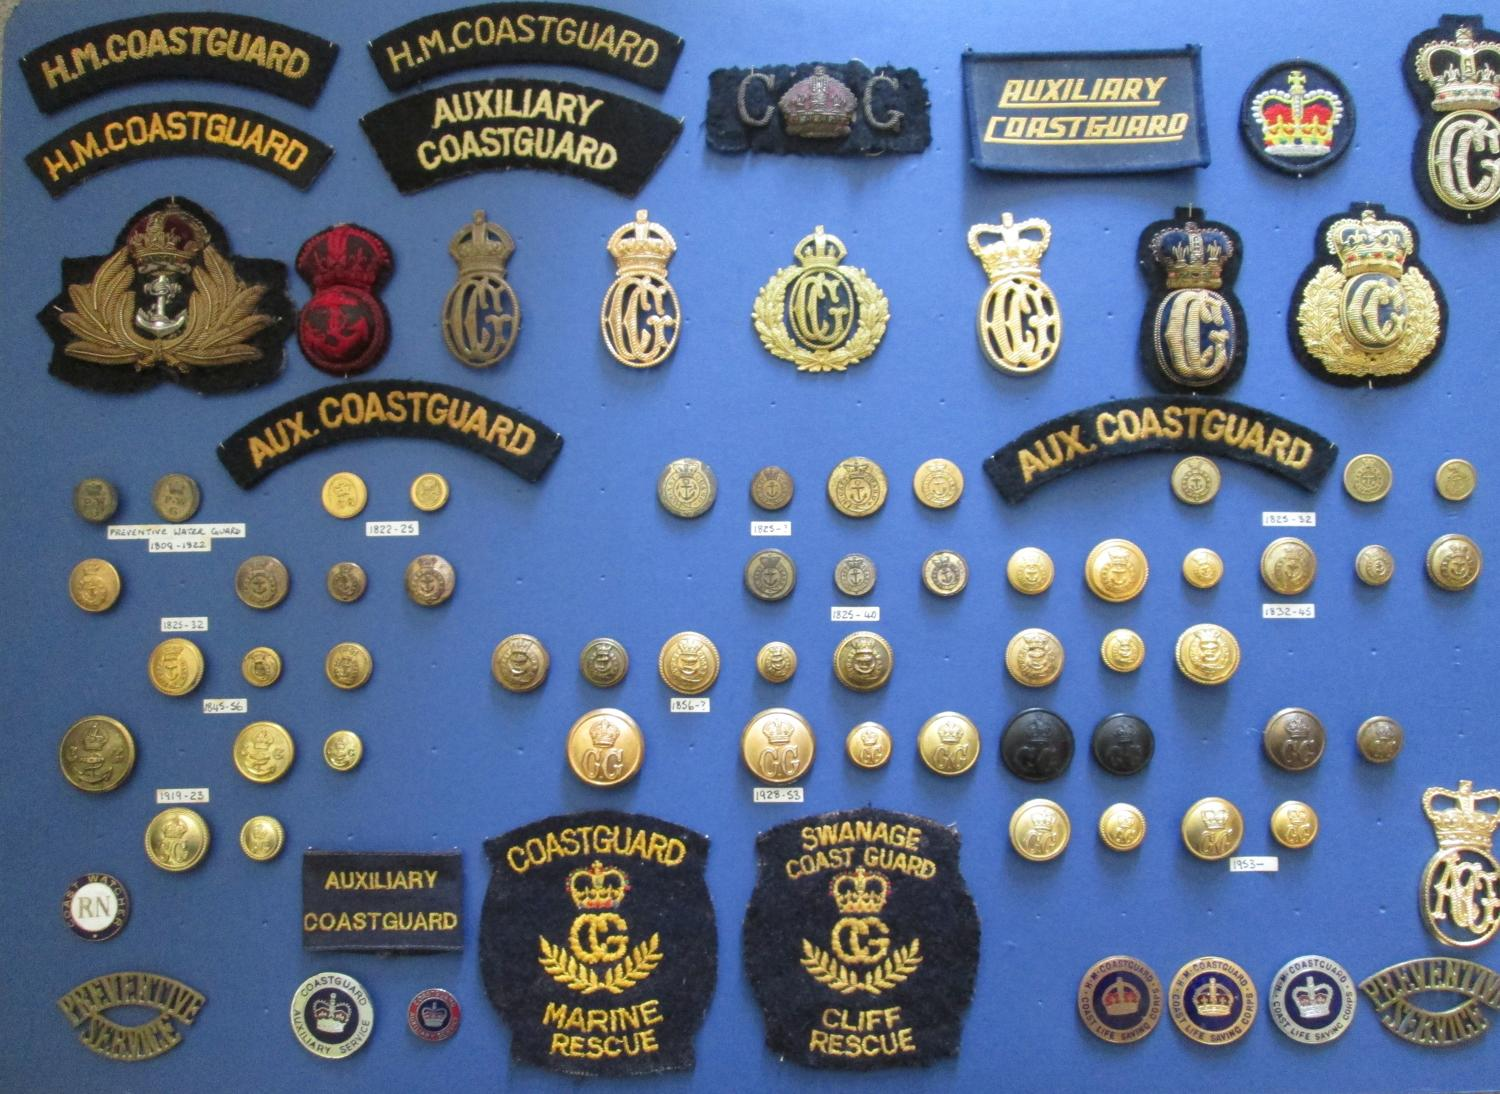 A COLLECTION OF H M COAST GUARD BADGES AND BUTTONS